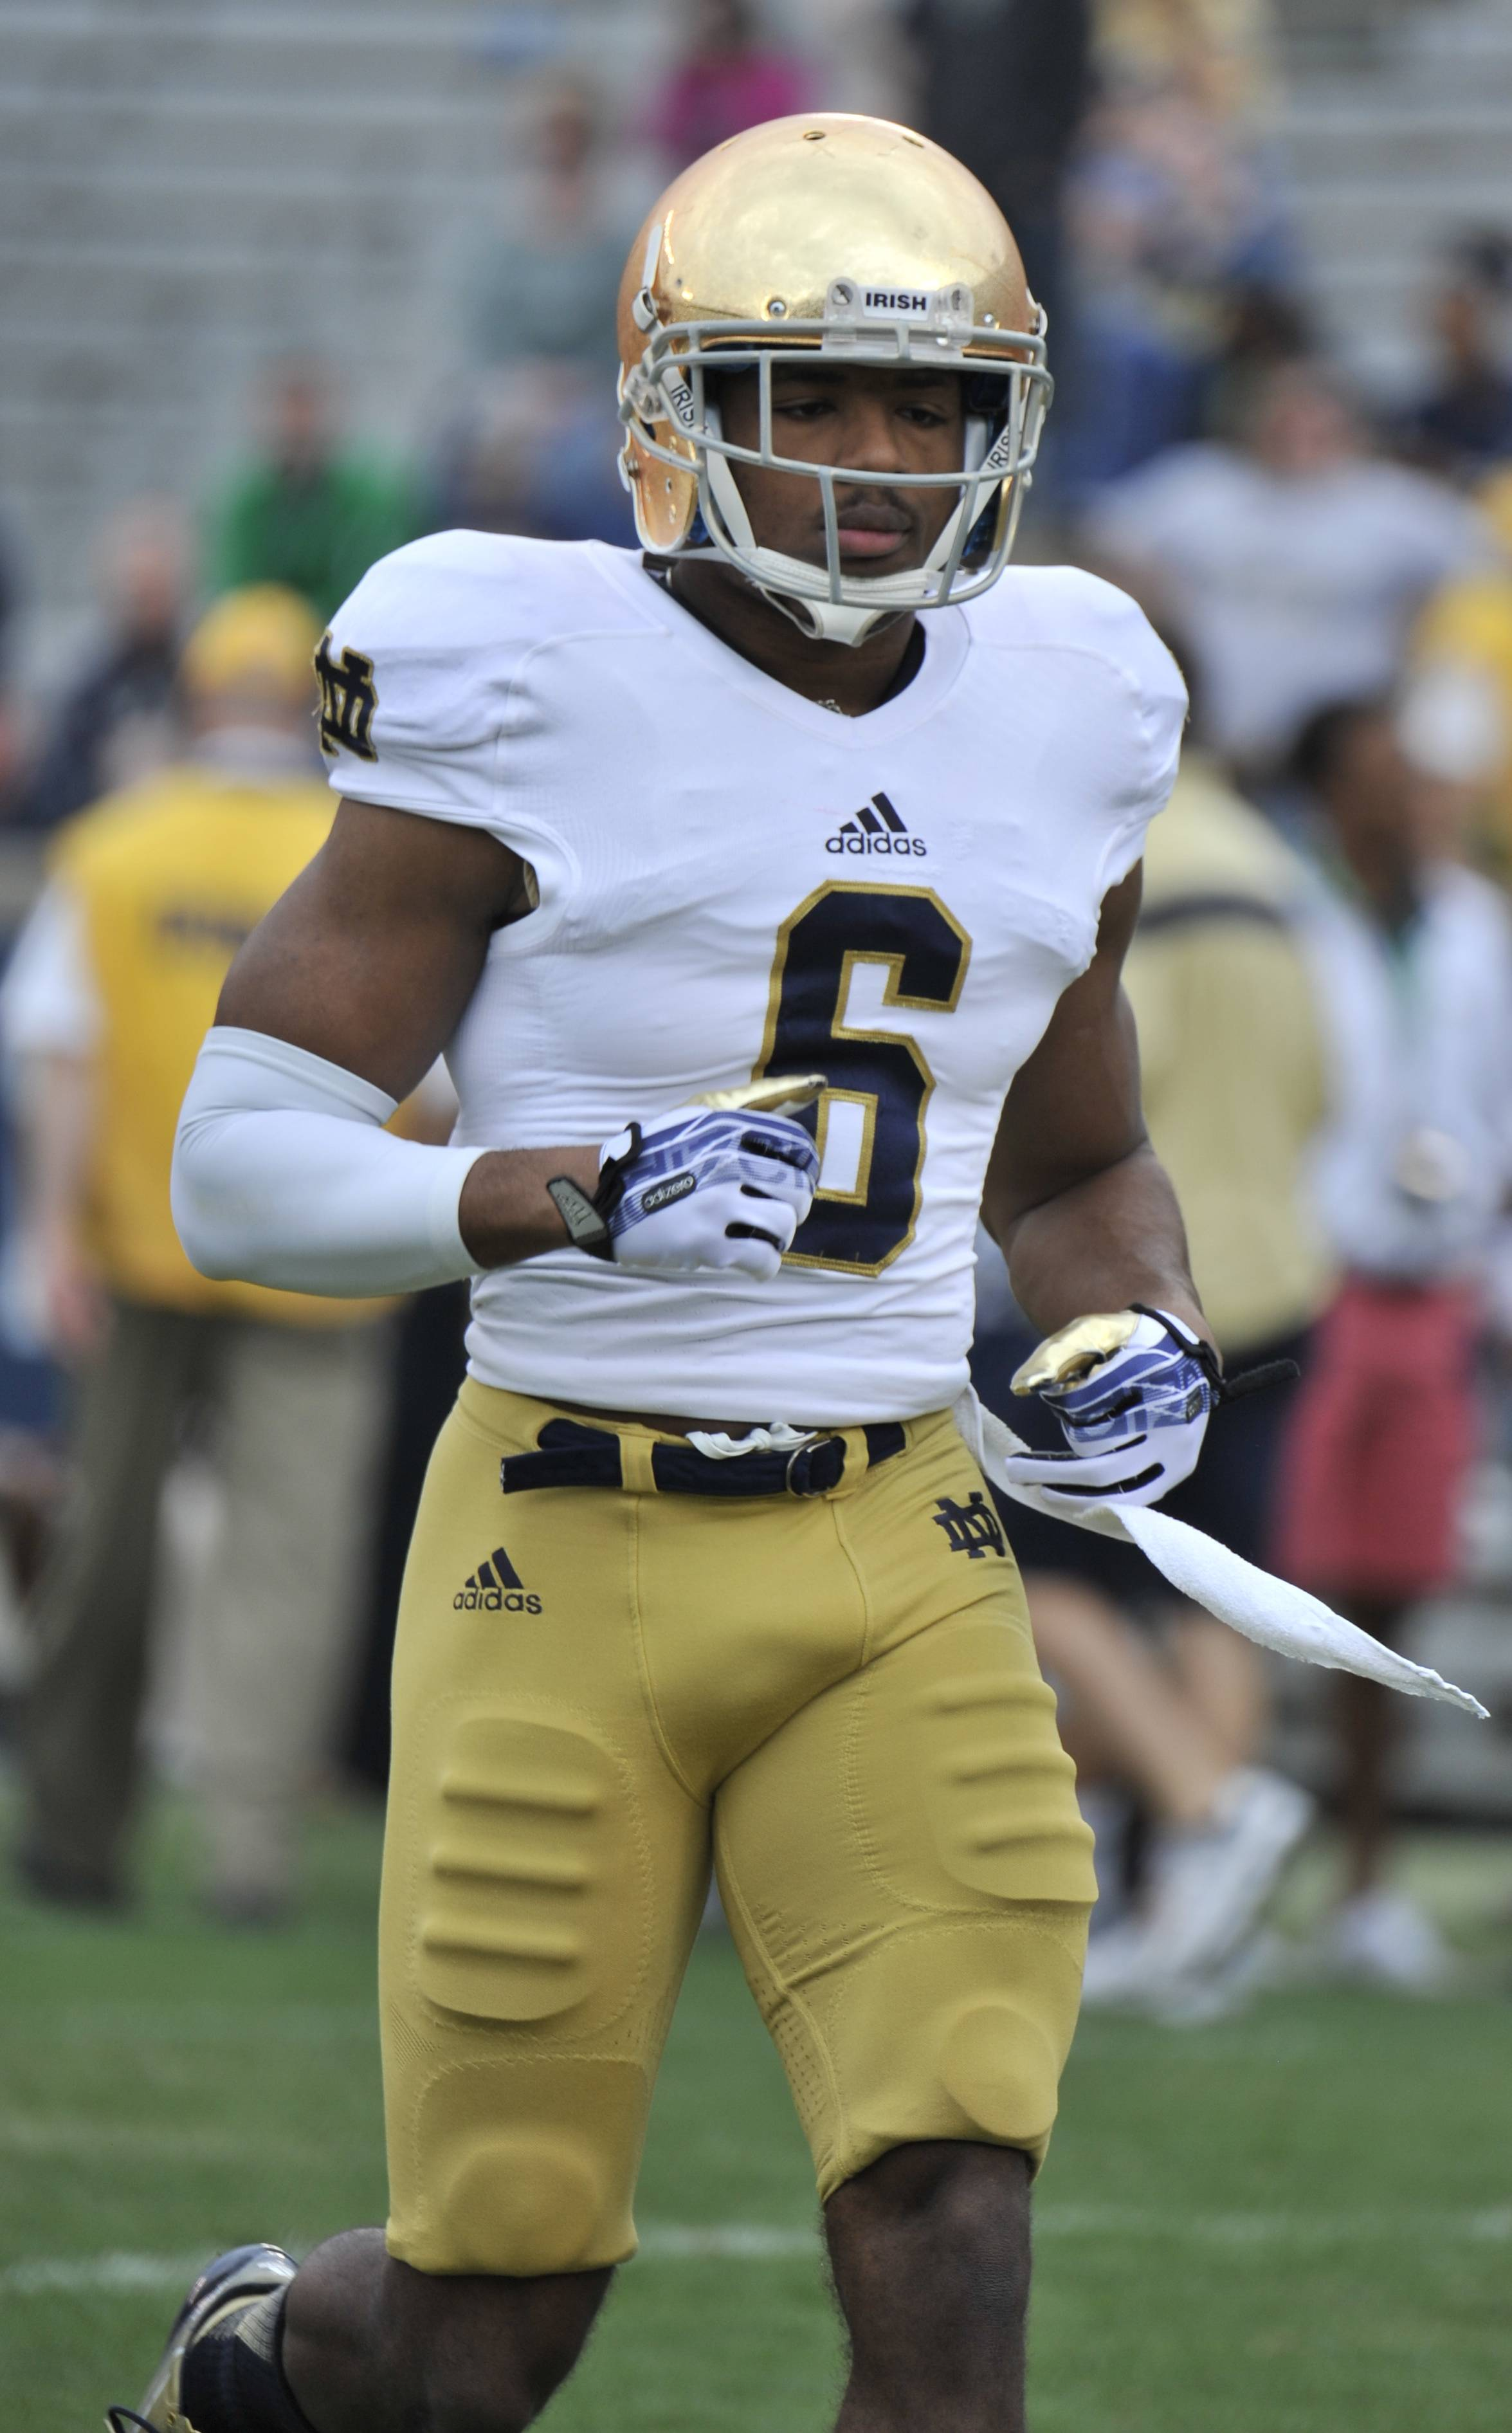 Notre Dame cornerback KeiVarae Russell and three other players are being withheld from practices and games until the university completes an investigation into whether papers and homework they turned in were completed by others.